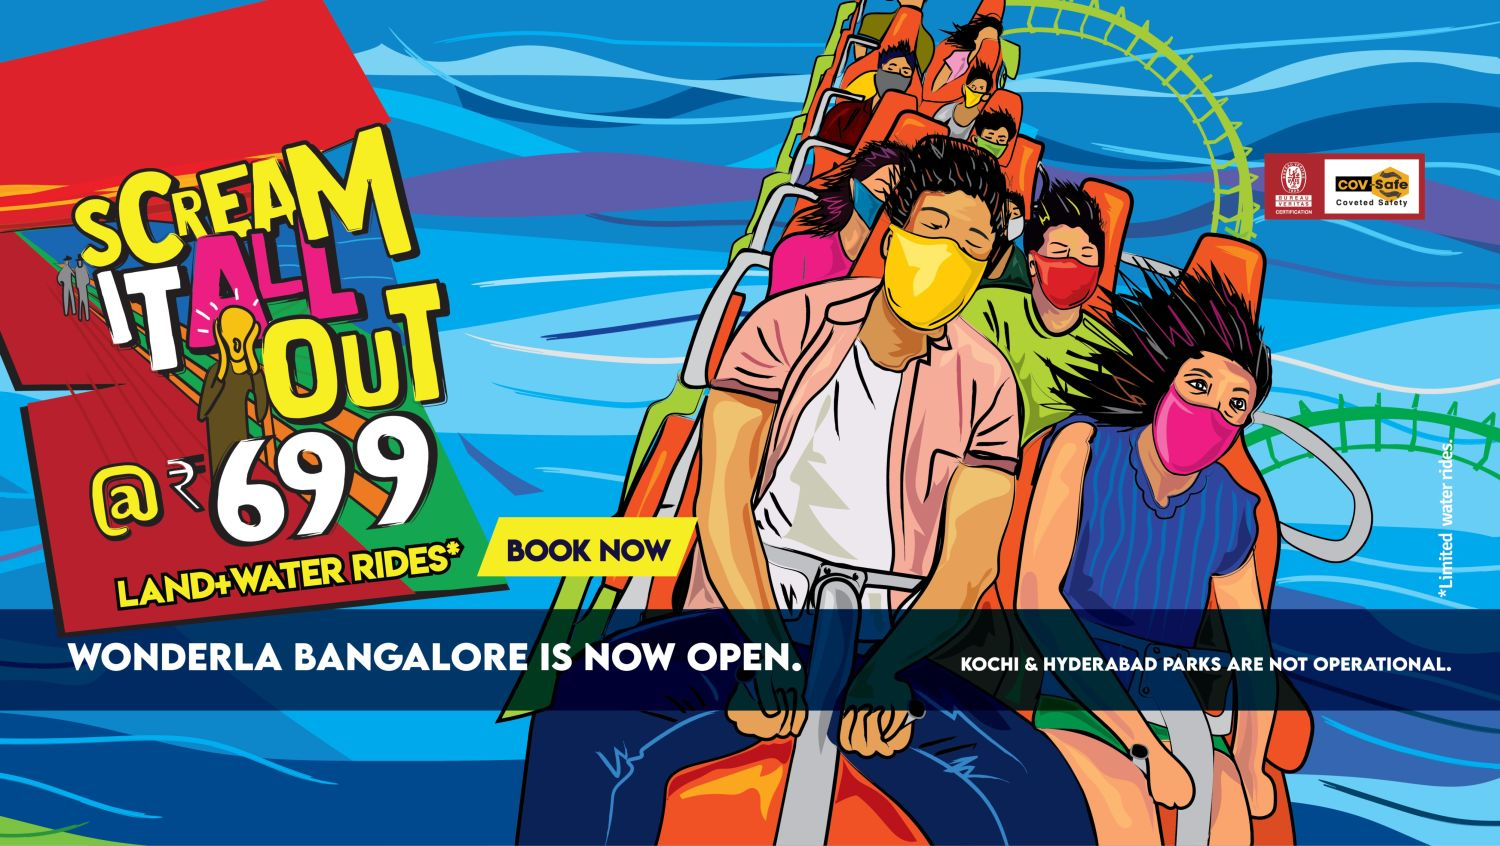 Wonderla Scream Web banner W 1500 x H 844 pxl 2 17 11 2020